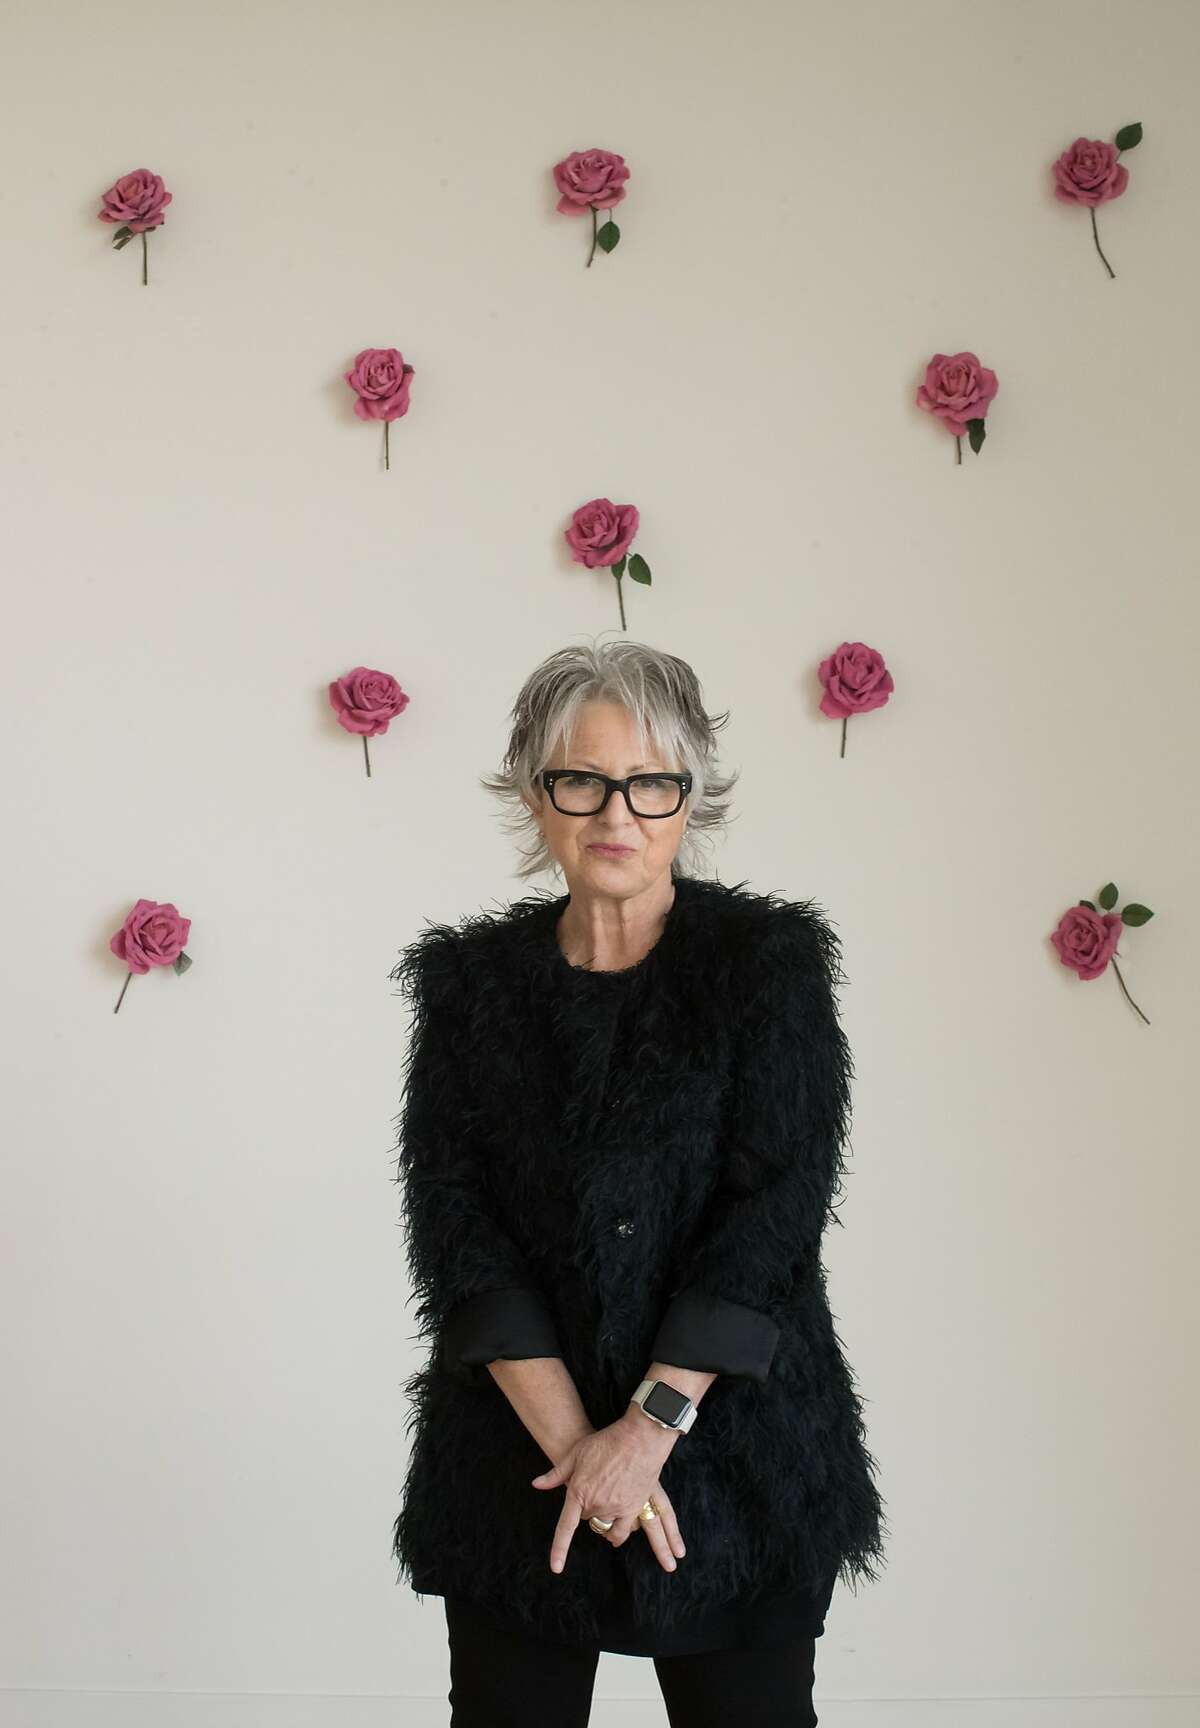 Jennifer Morla, creative director, graphic designer and founder at her home with roses on her wall she had up since 1995 on Monday, Nov. 12, 2018, in San Francisco, Calif.